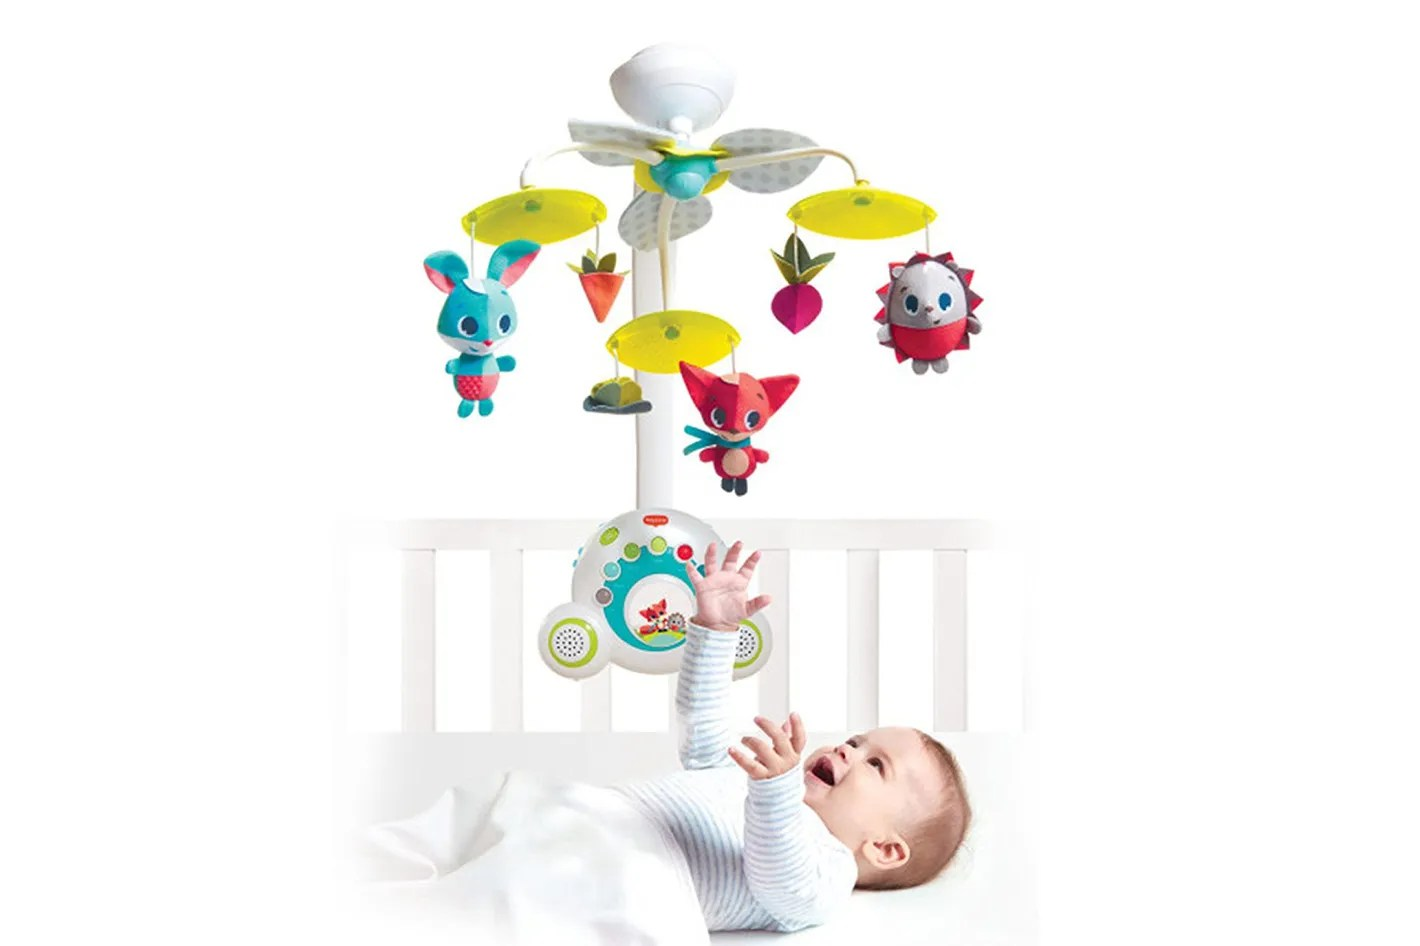 Wooden Baby Mobile 11 Best Baby Mobiles For Crib Stroller Car Seat 2017